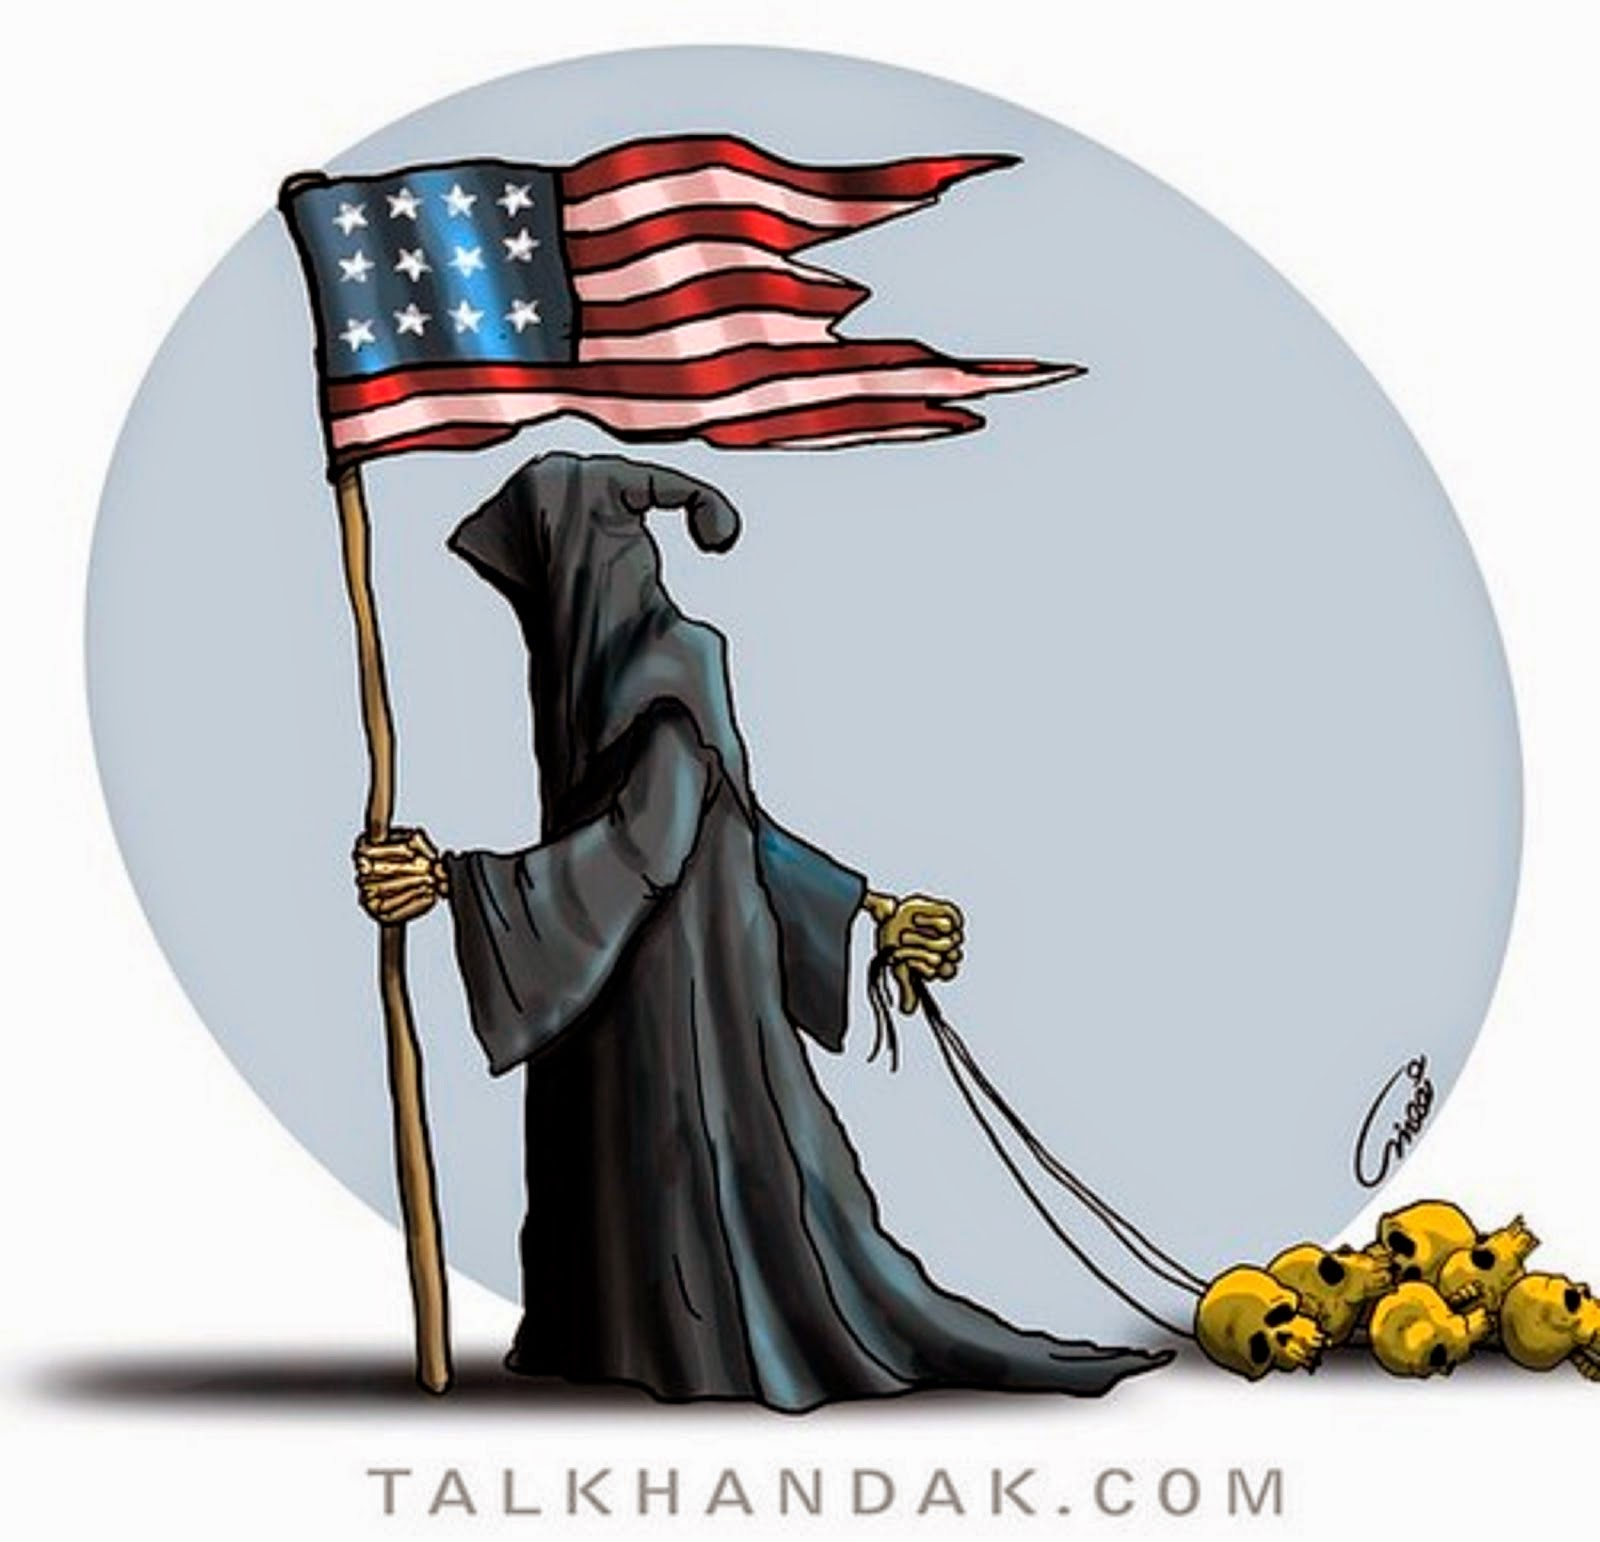 GRIM REAPER WITH THE U.S. FLAG